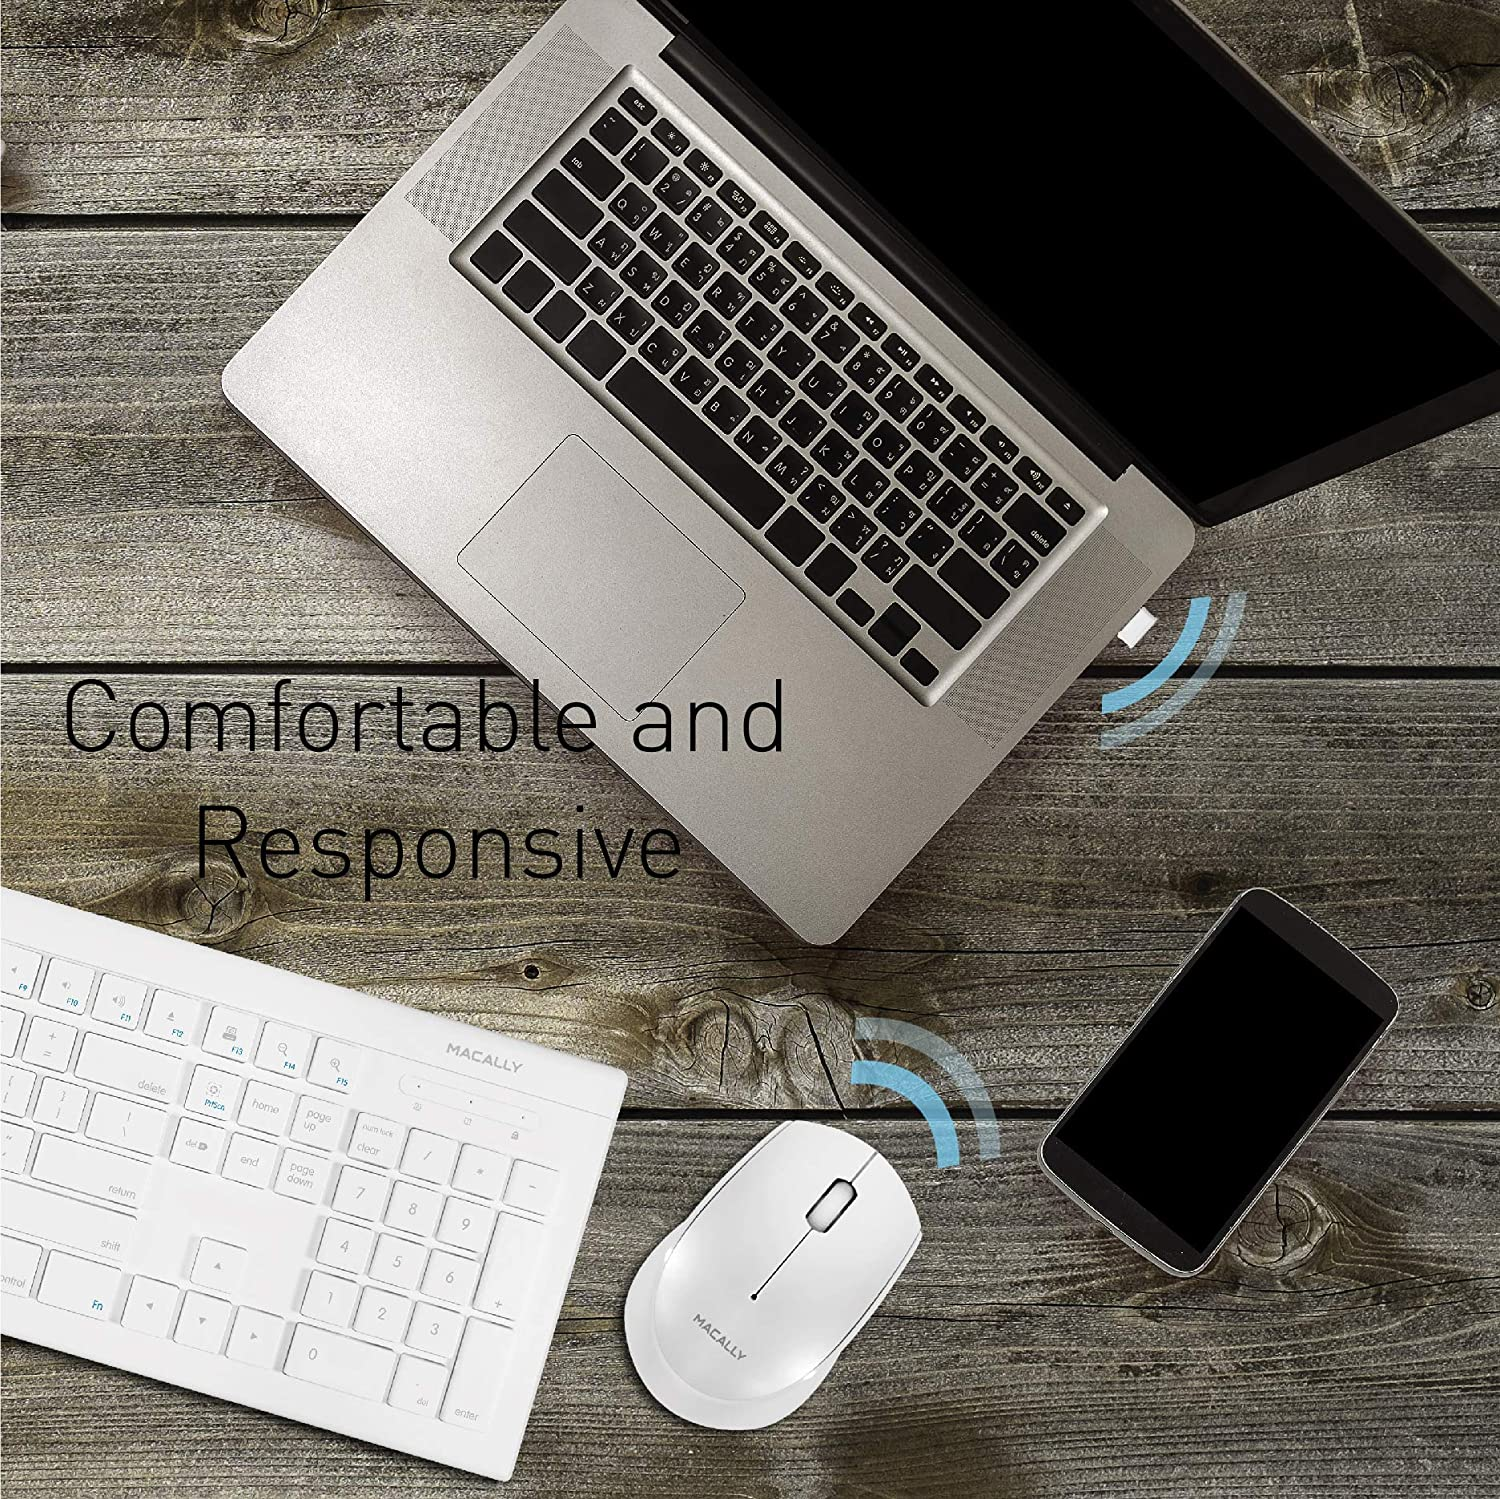 Optical Sensor 1200 DPI Small Compact Design for Easy Travel 2.4G USB Receiver White Macally RF Wireless Mouse for Laptop Windows PC//Apple Mac//Desktop Computer